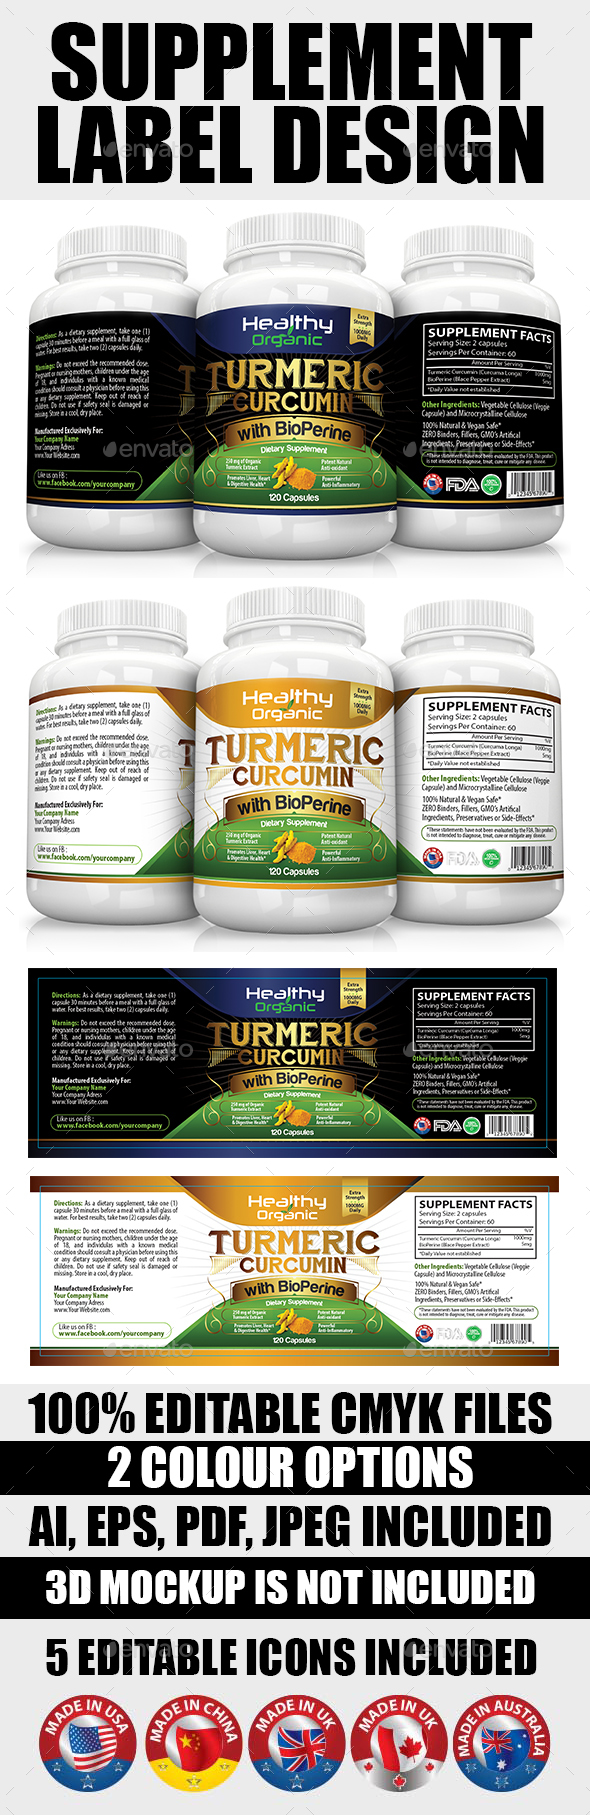 Supplement Label Template Vol-04 by Artsoldiers | GraphicRiver